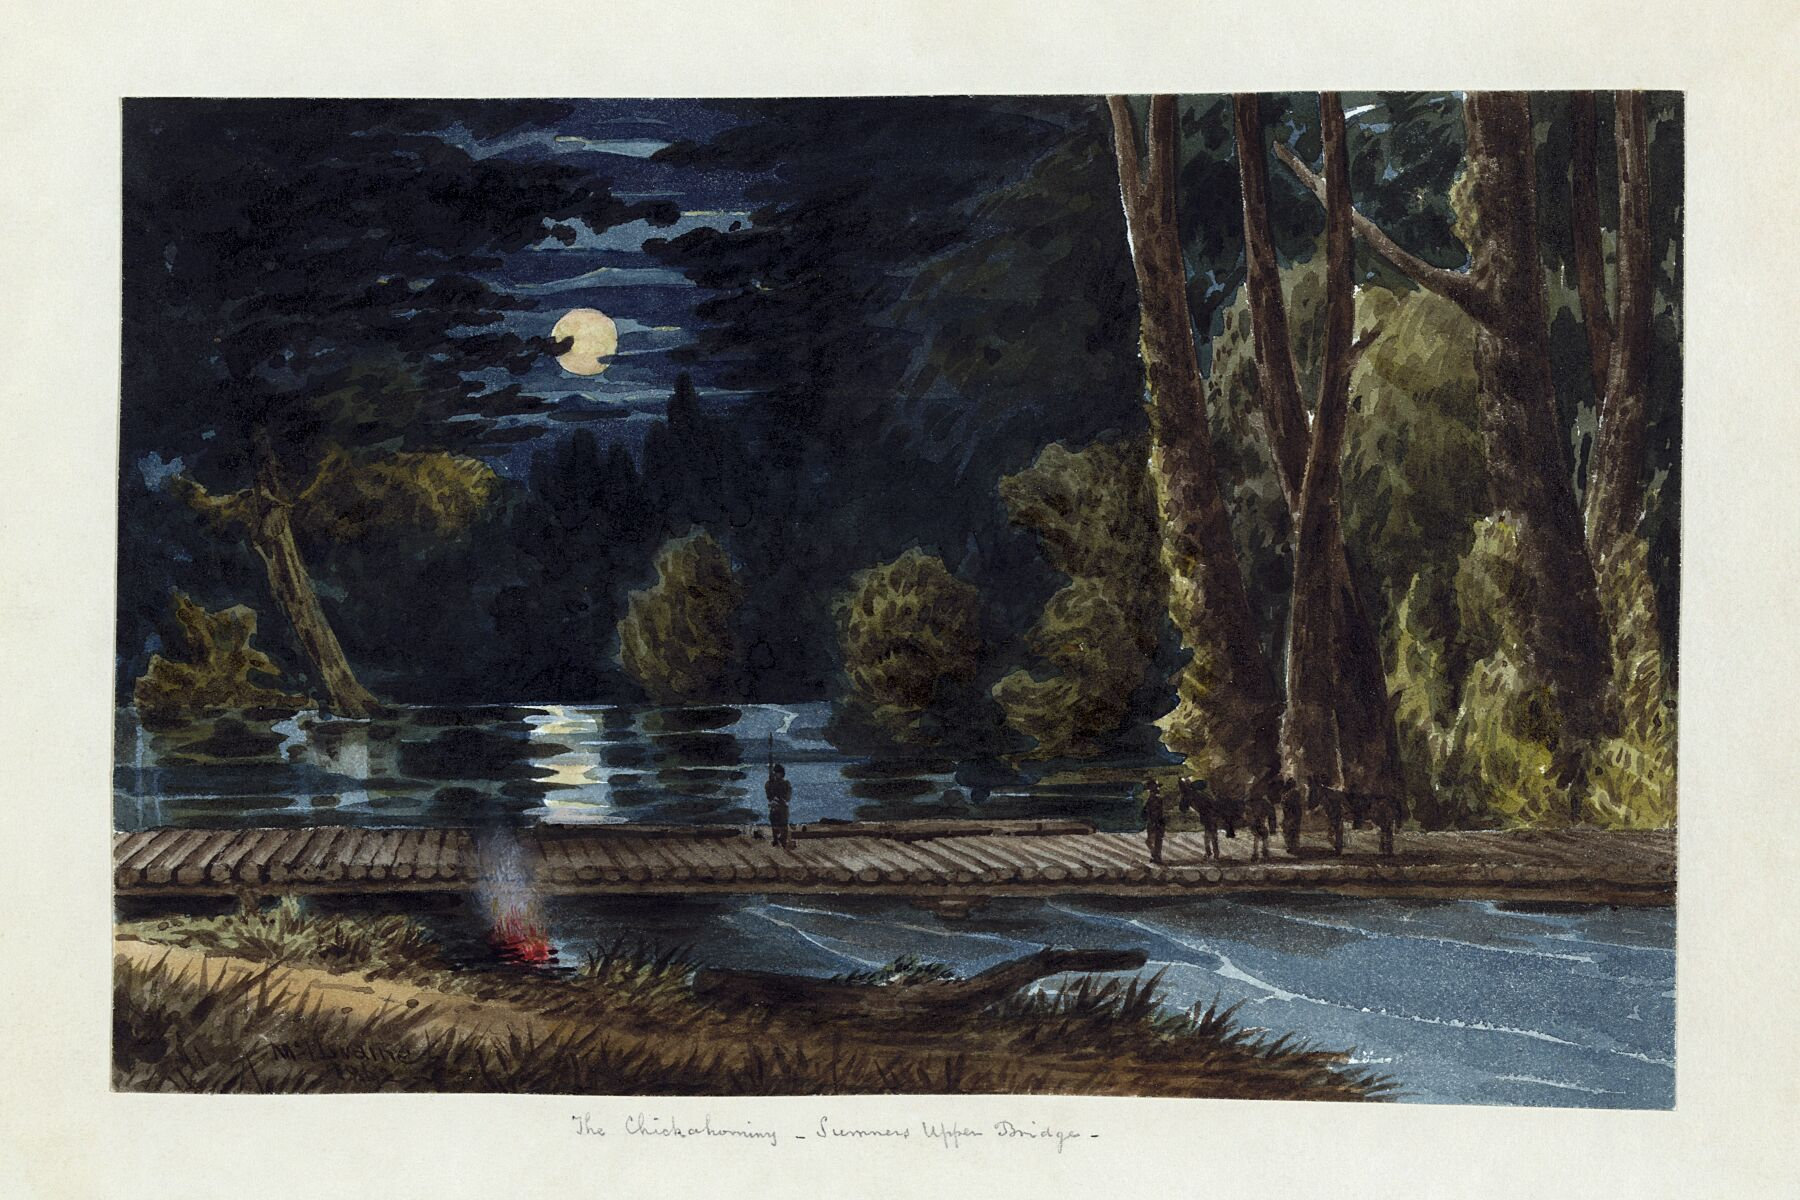 The Chickahominy, Sumners Upper Bridge by William McIlvaine - 1862